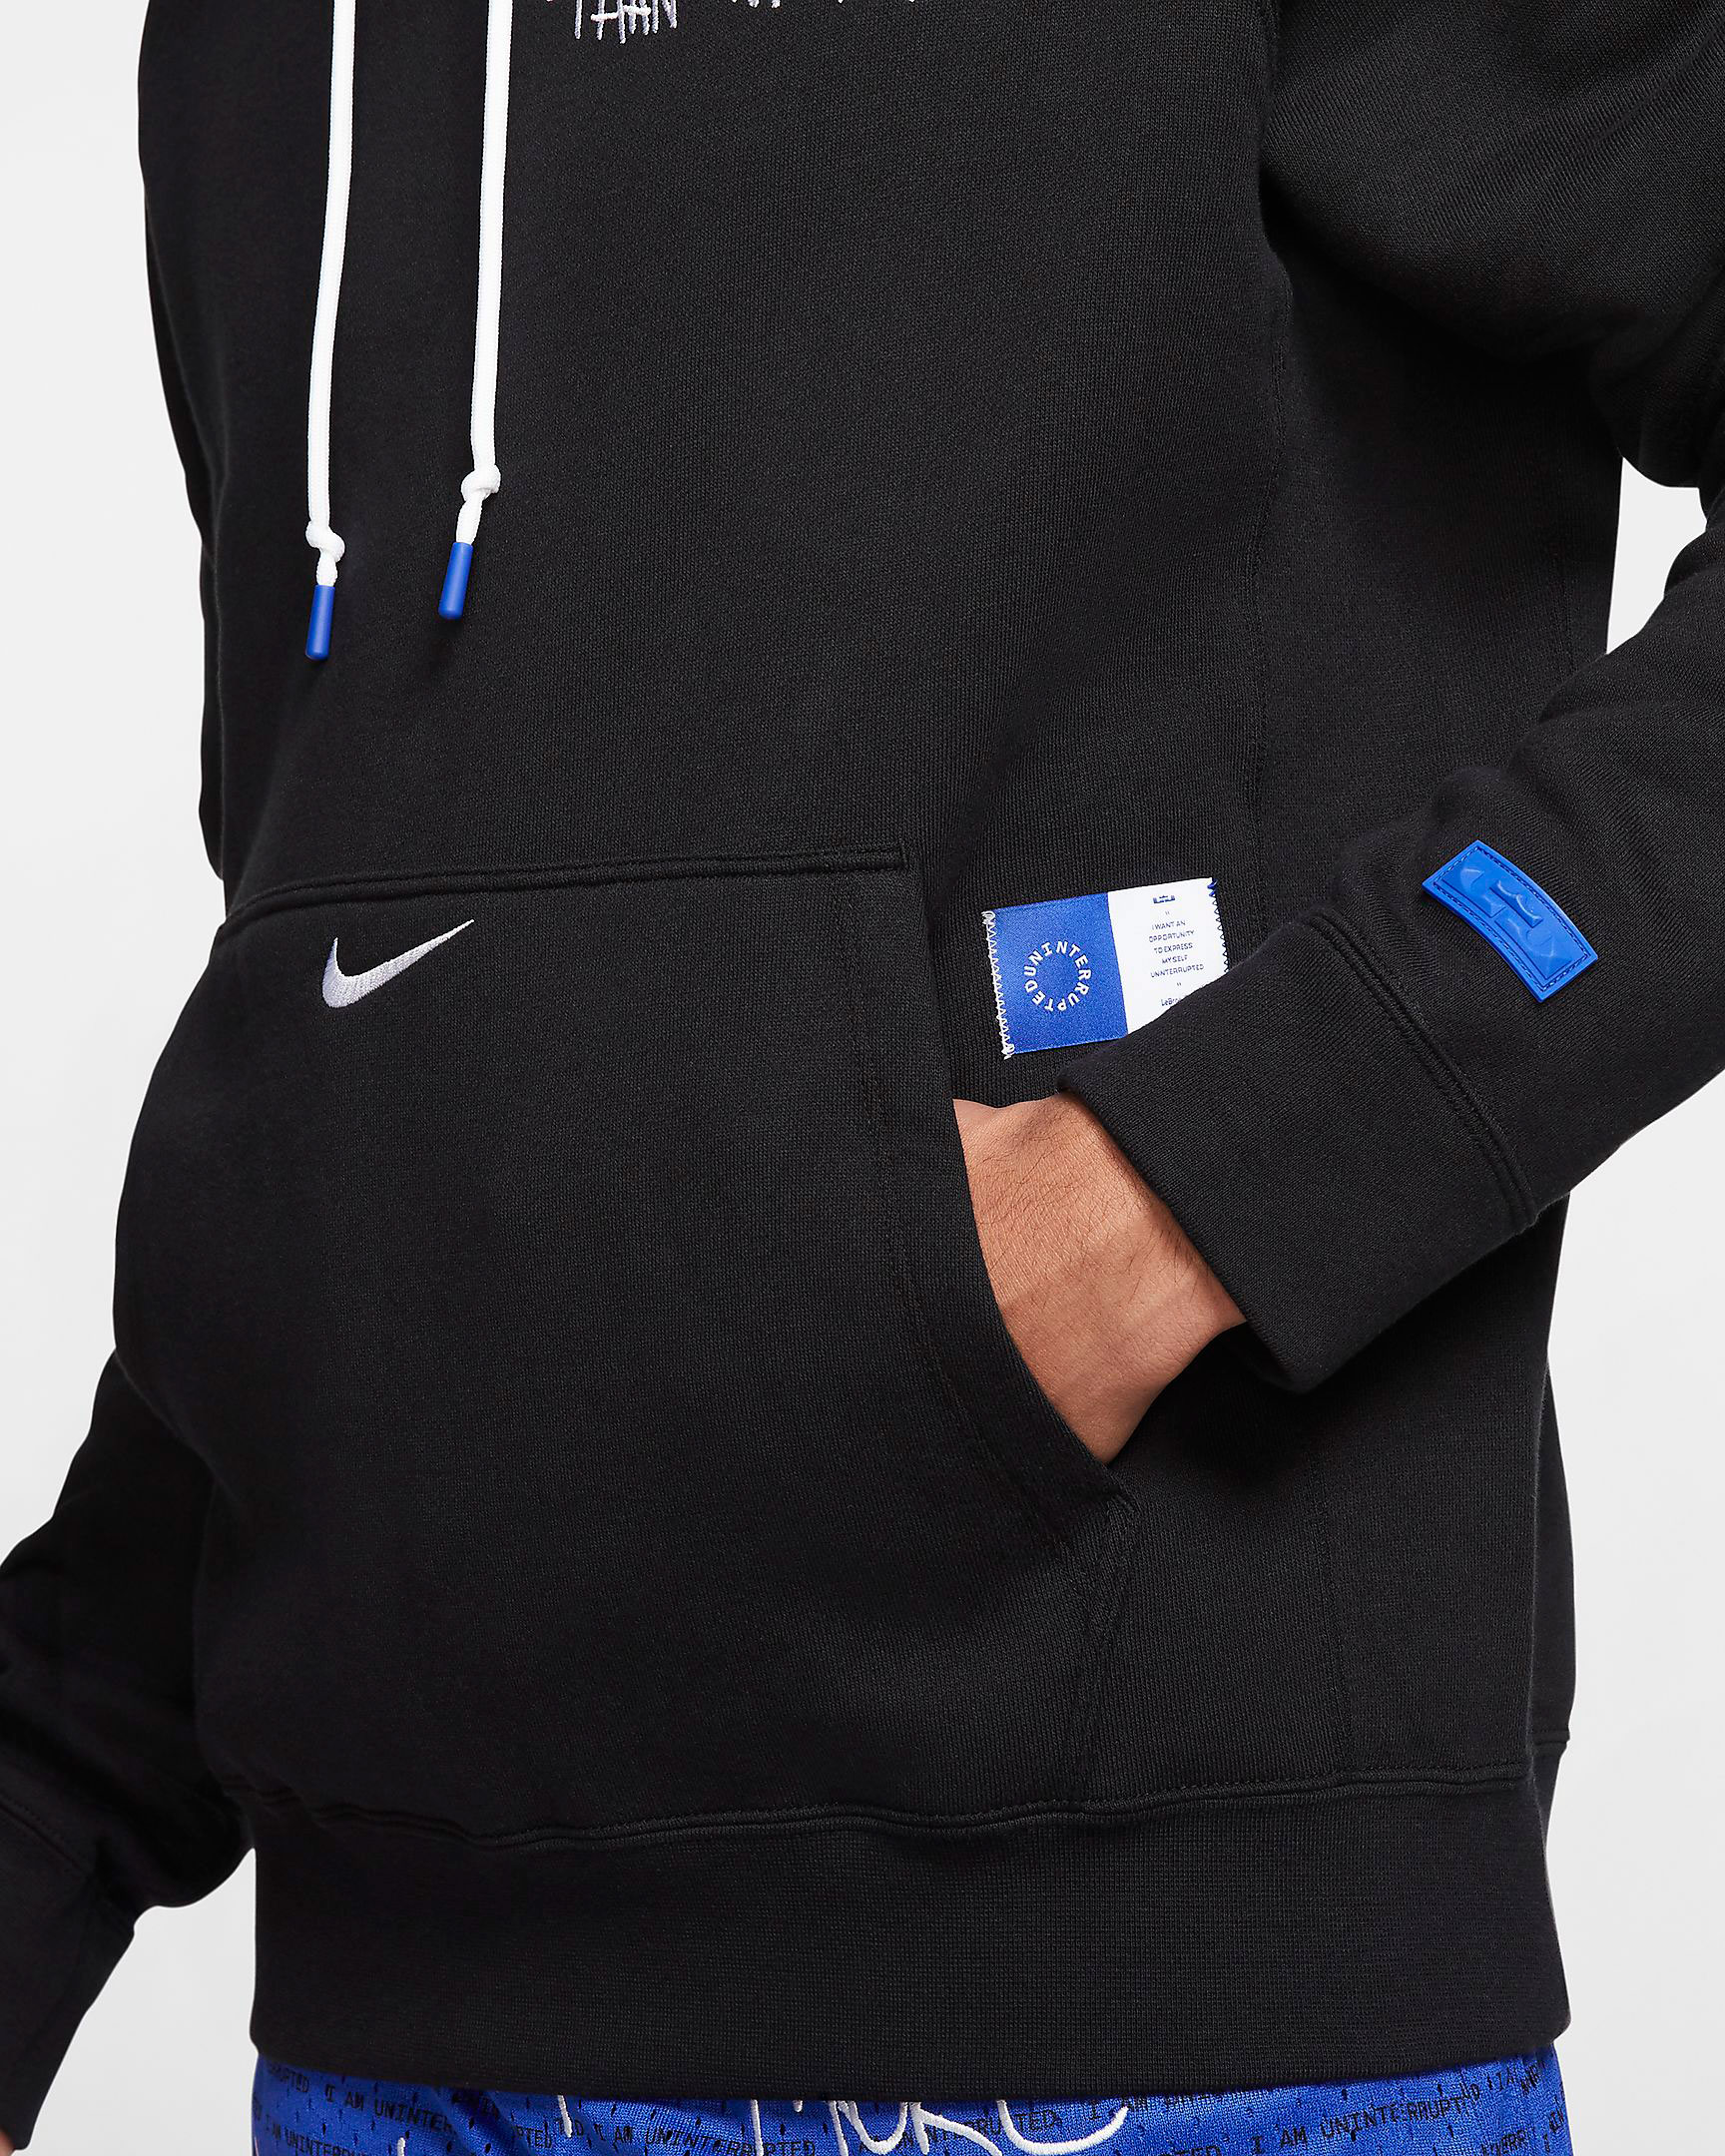 nike-lebron-more-than-an-athlete-uninterrupted-hoodie-3